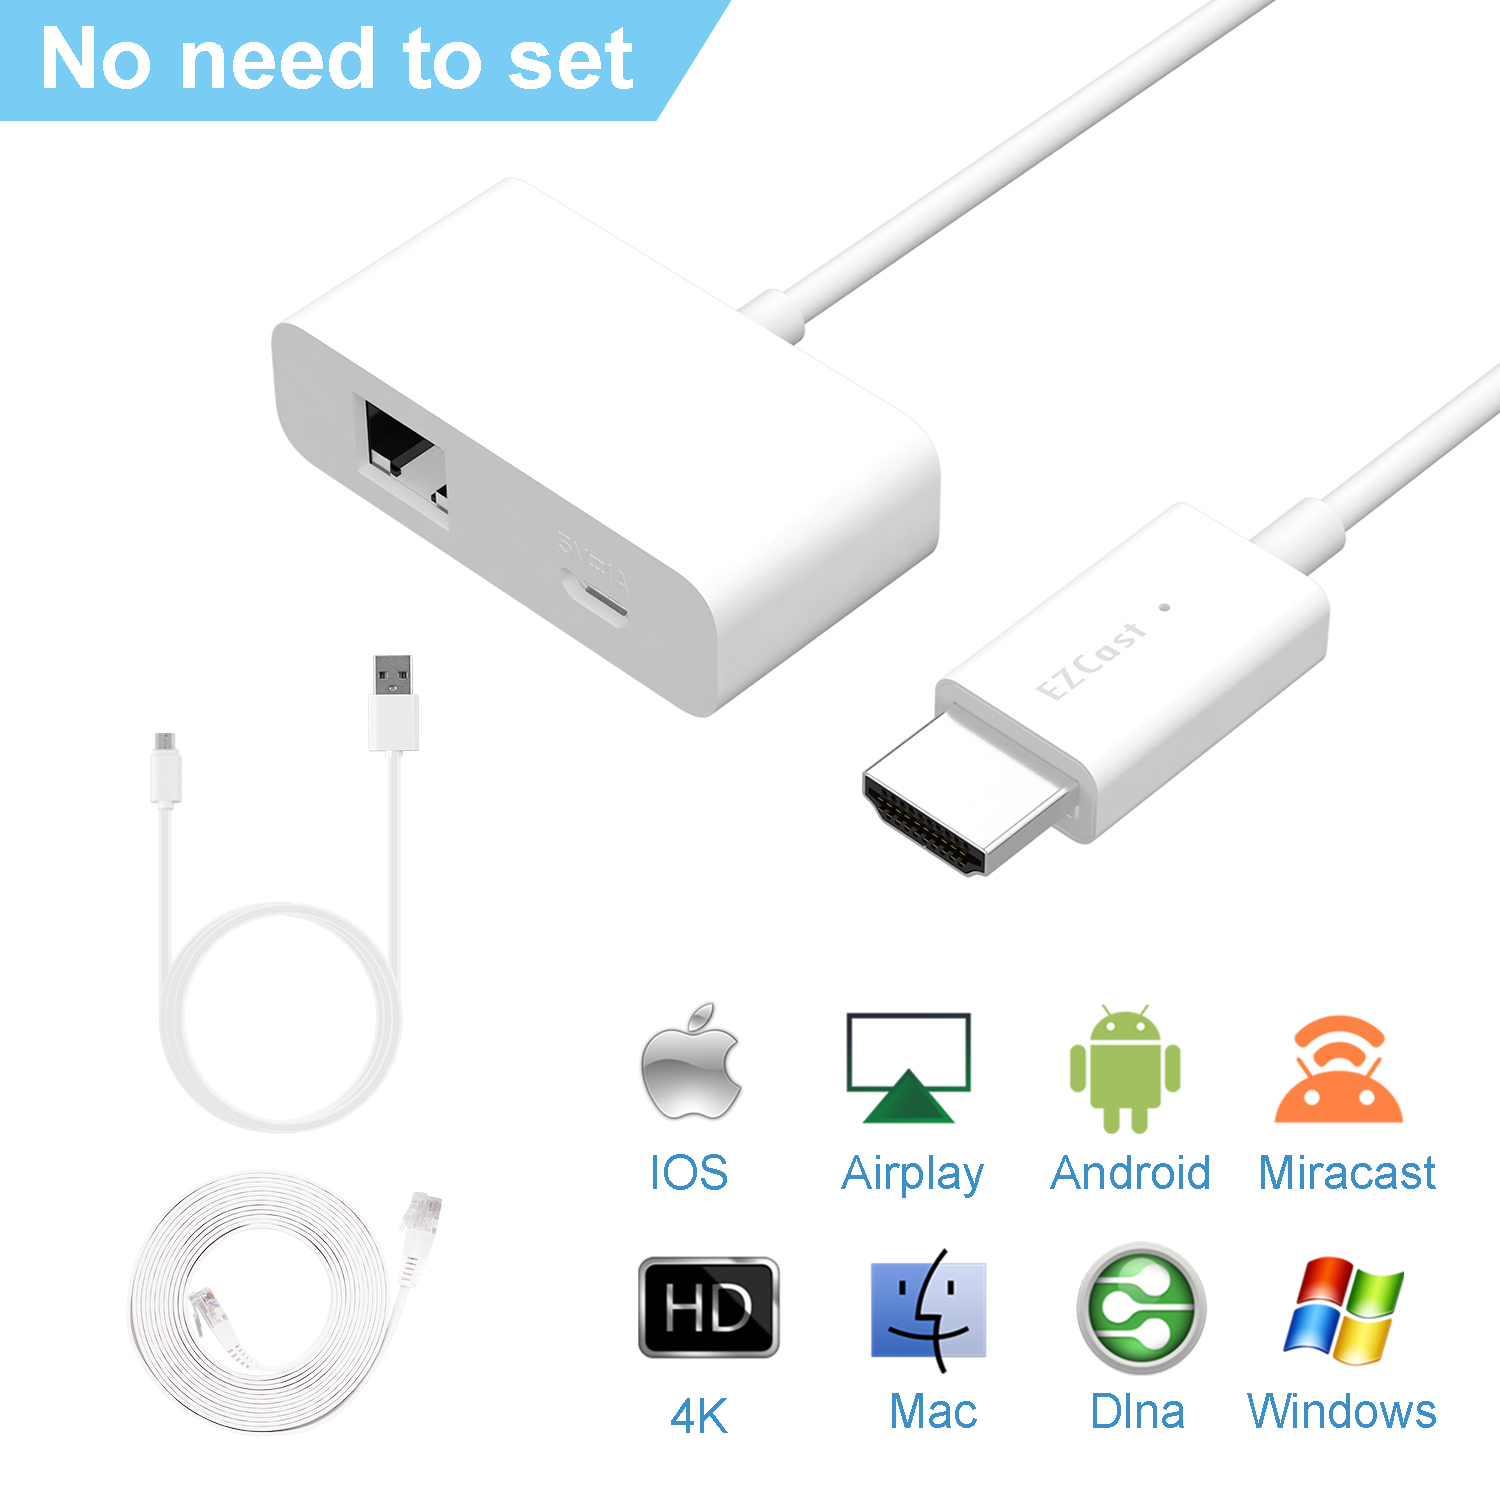 Details about HD1080P Wireless WIFI Display Dongle Adapter HDMI Miracast  DLNA AirPlay TV Stick